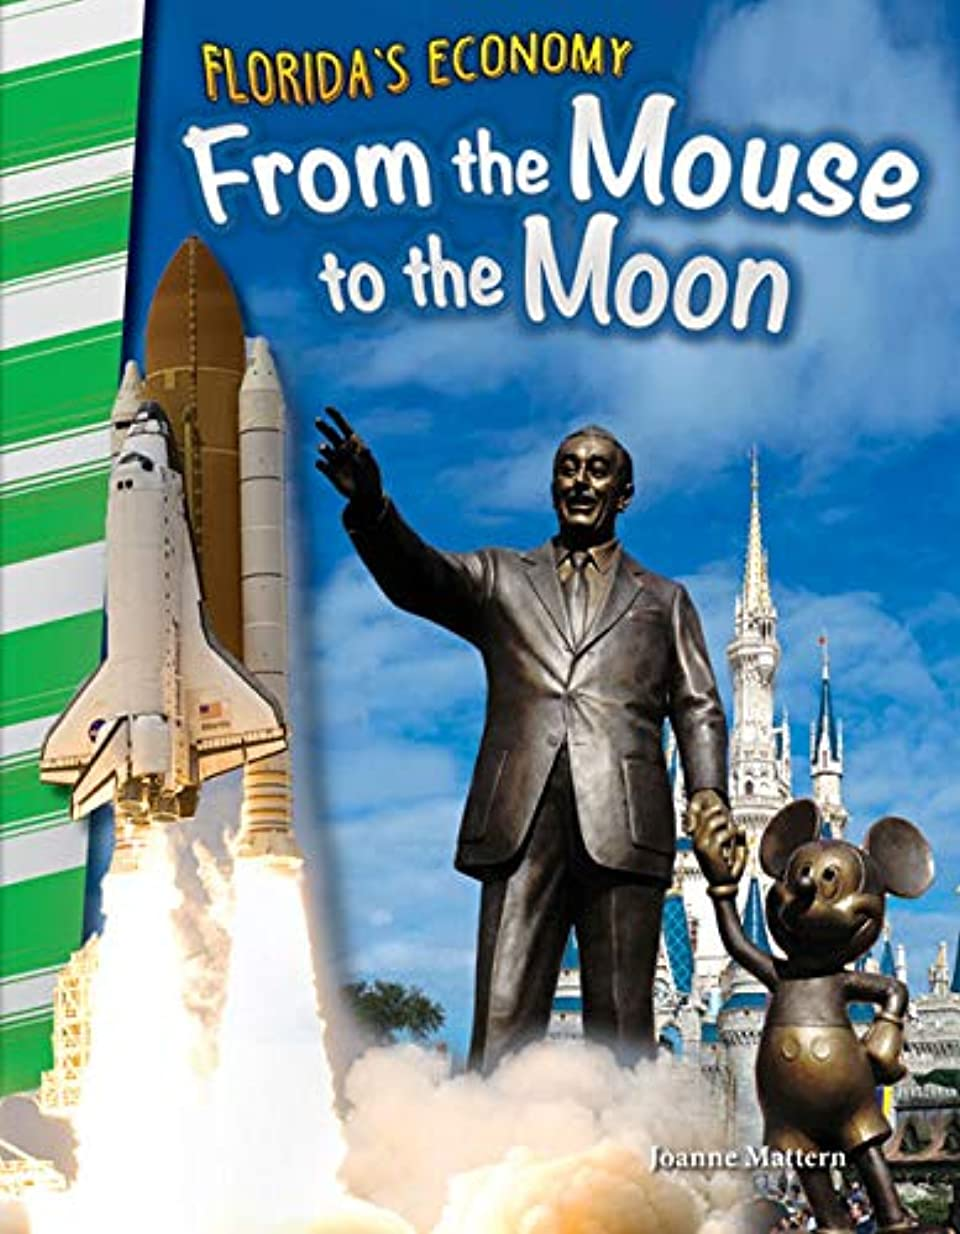 Florida's Economy: From the Mouse to the Moon (Social Studies Readers) (English Edition)